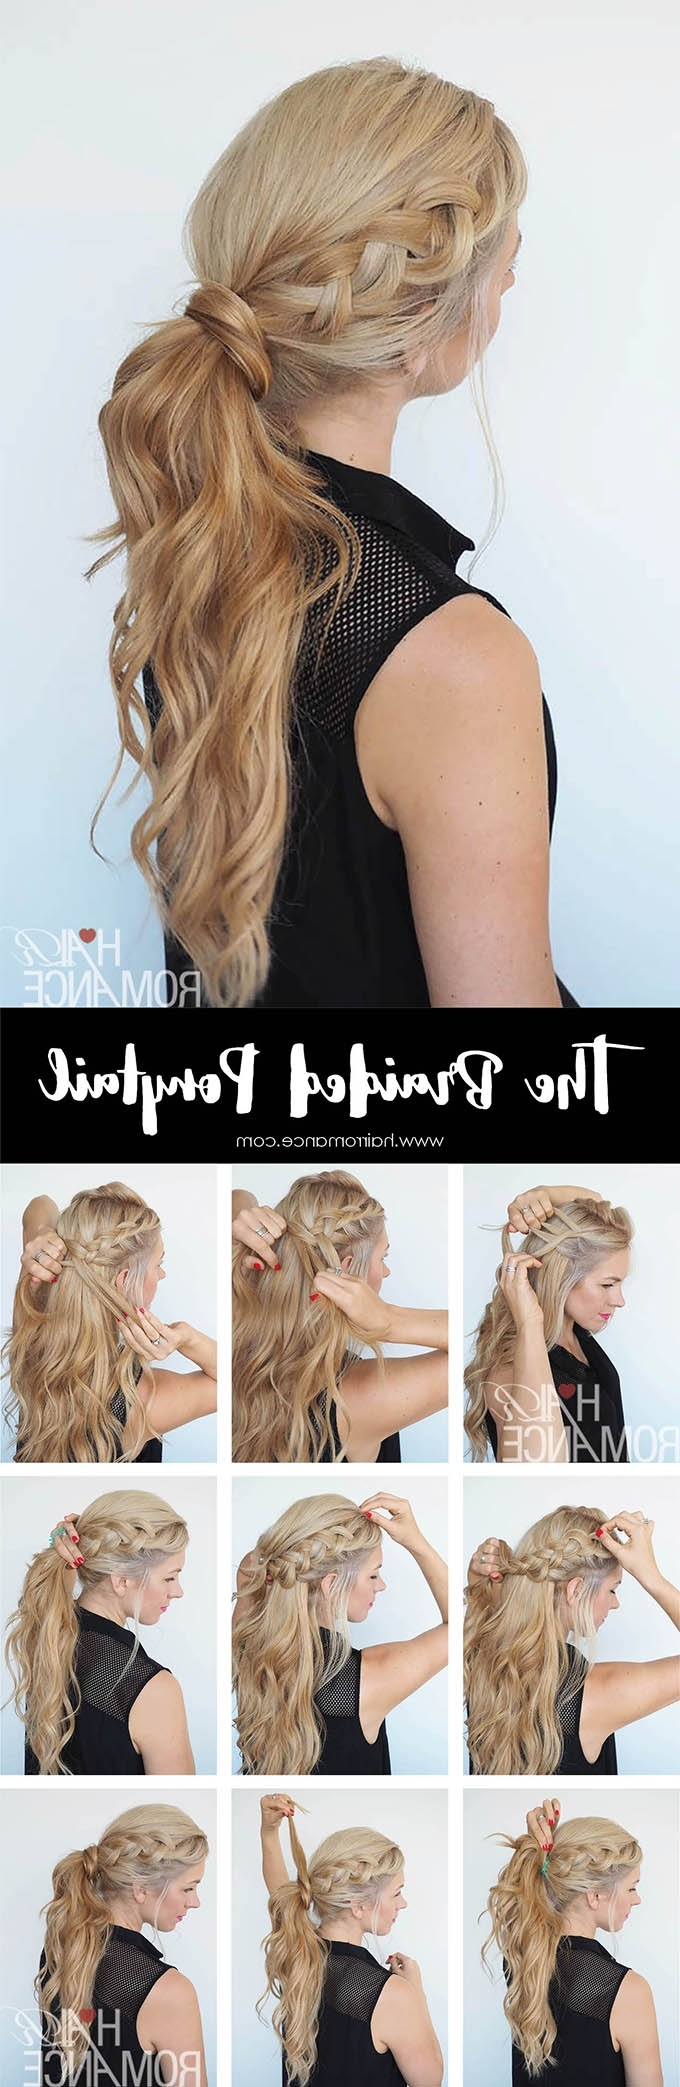 Get Out Of A Hair Rut – Braided Ponytail Hairstyle Tutorial – Hair For Most Up To Date Braided Ponytail Hairstyles (Gallery 14 of 15)